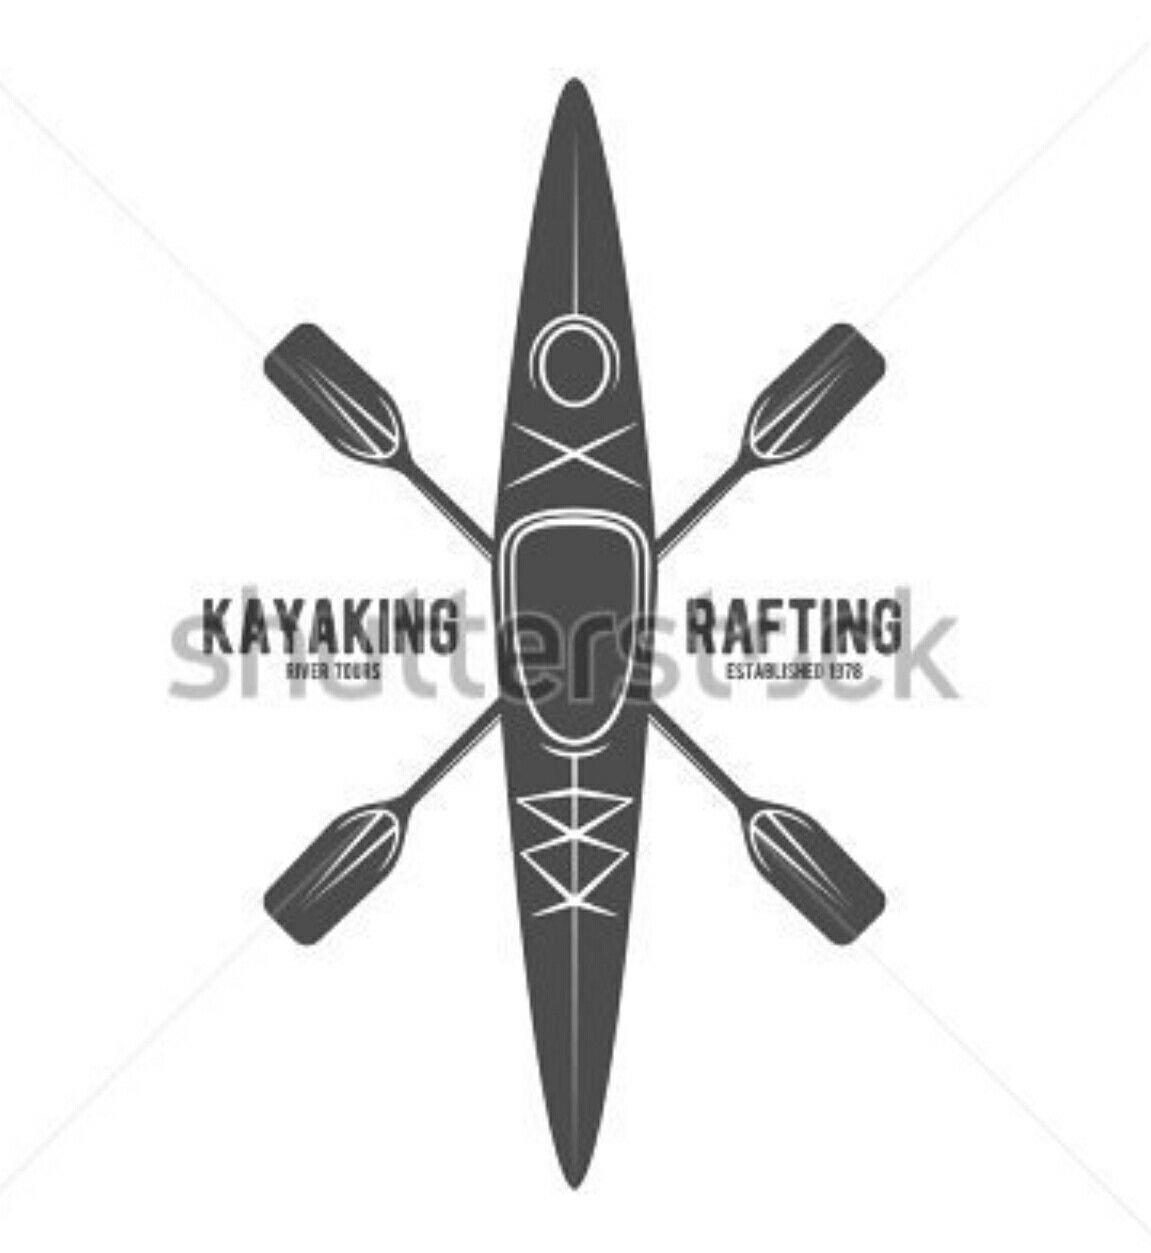 kayak tattoo idea ratatattat pinterest tattoo piercings and tatoo. Black Bedroom Furniture Sets. Home Design Ideas